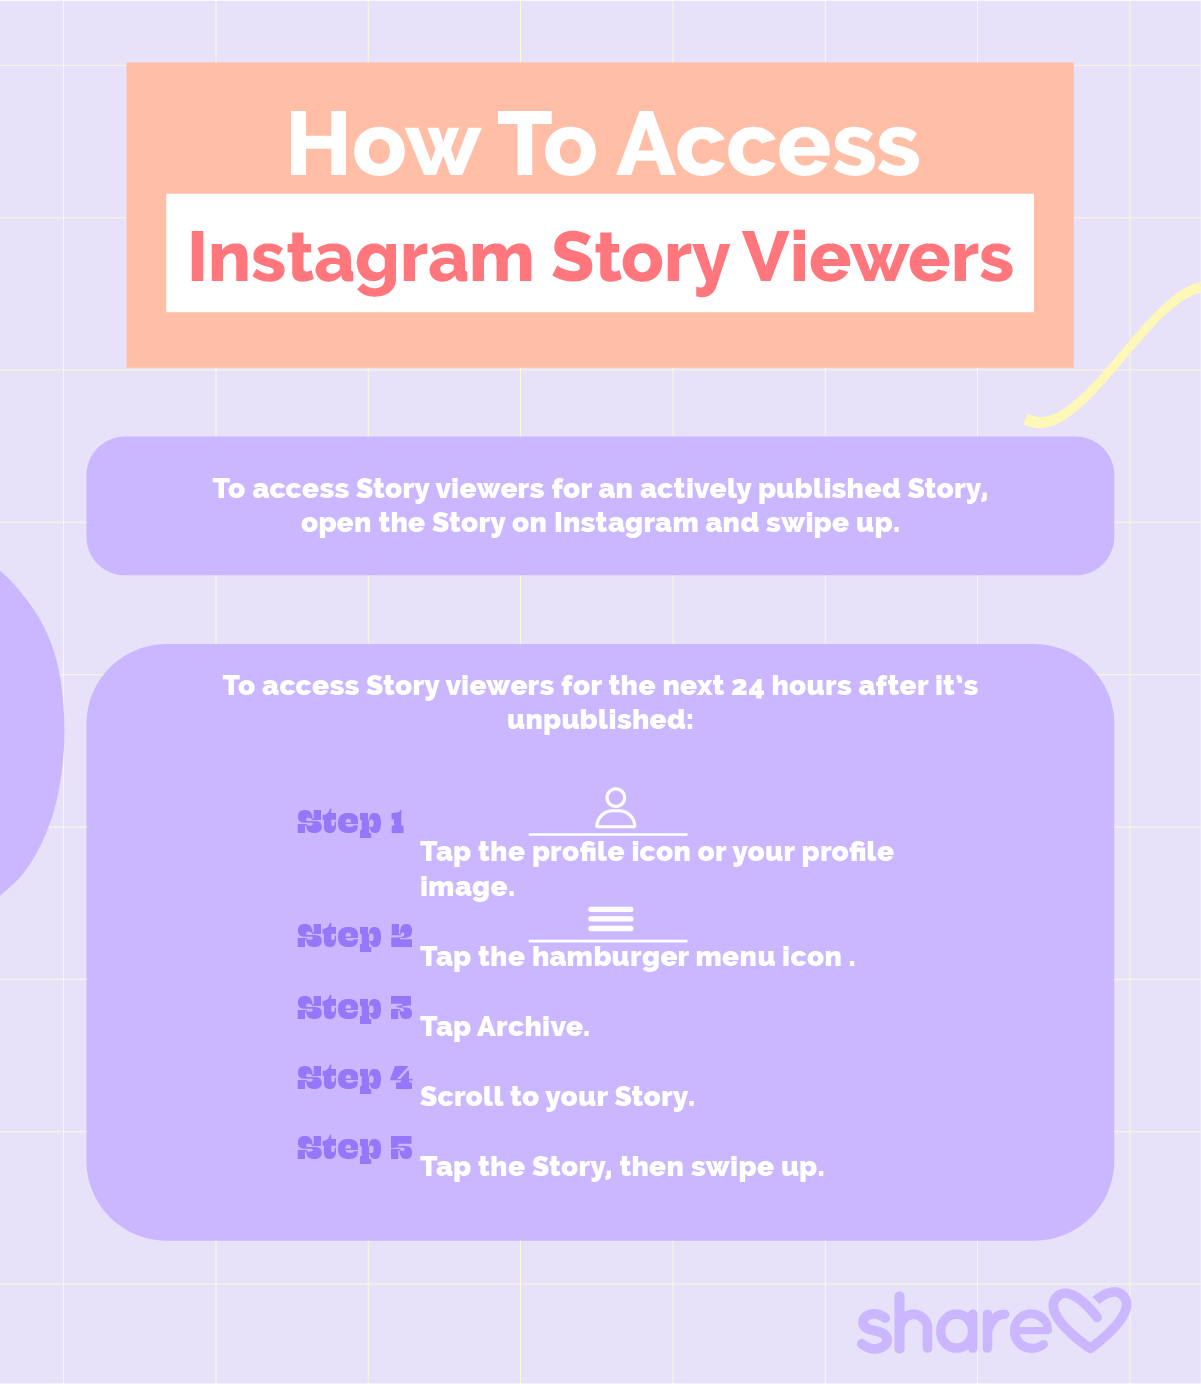 How to access story viewers